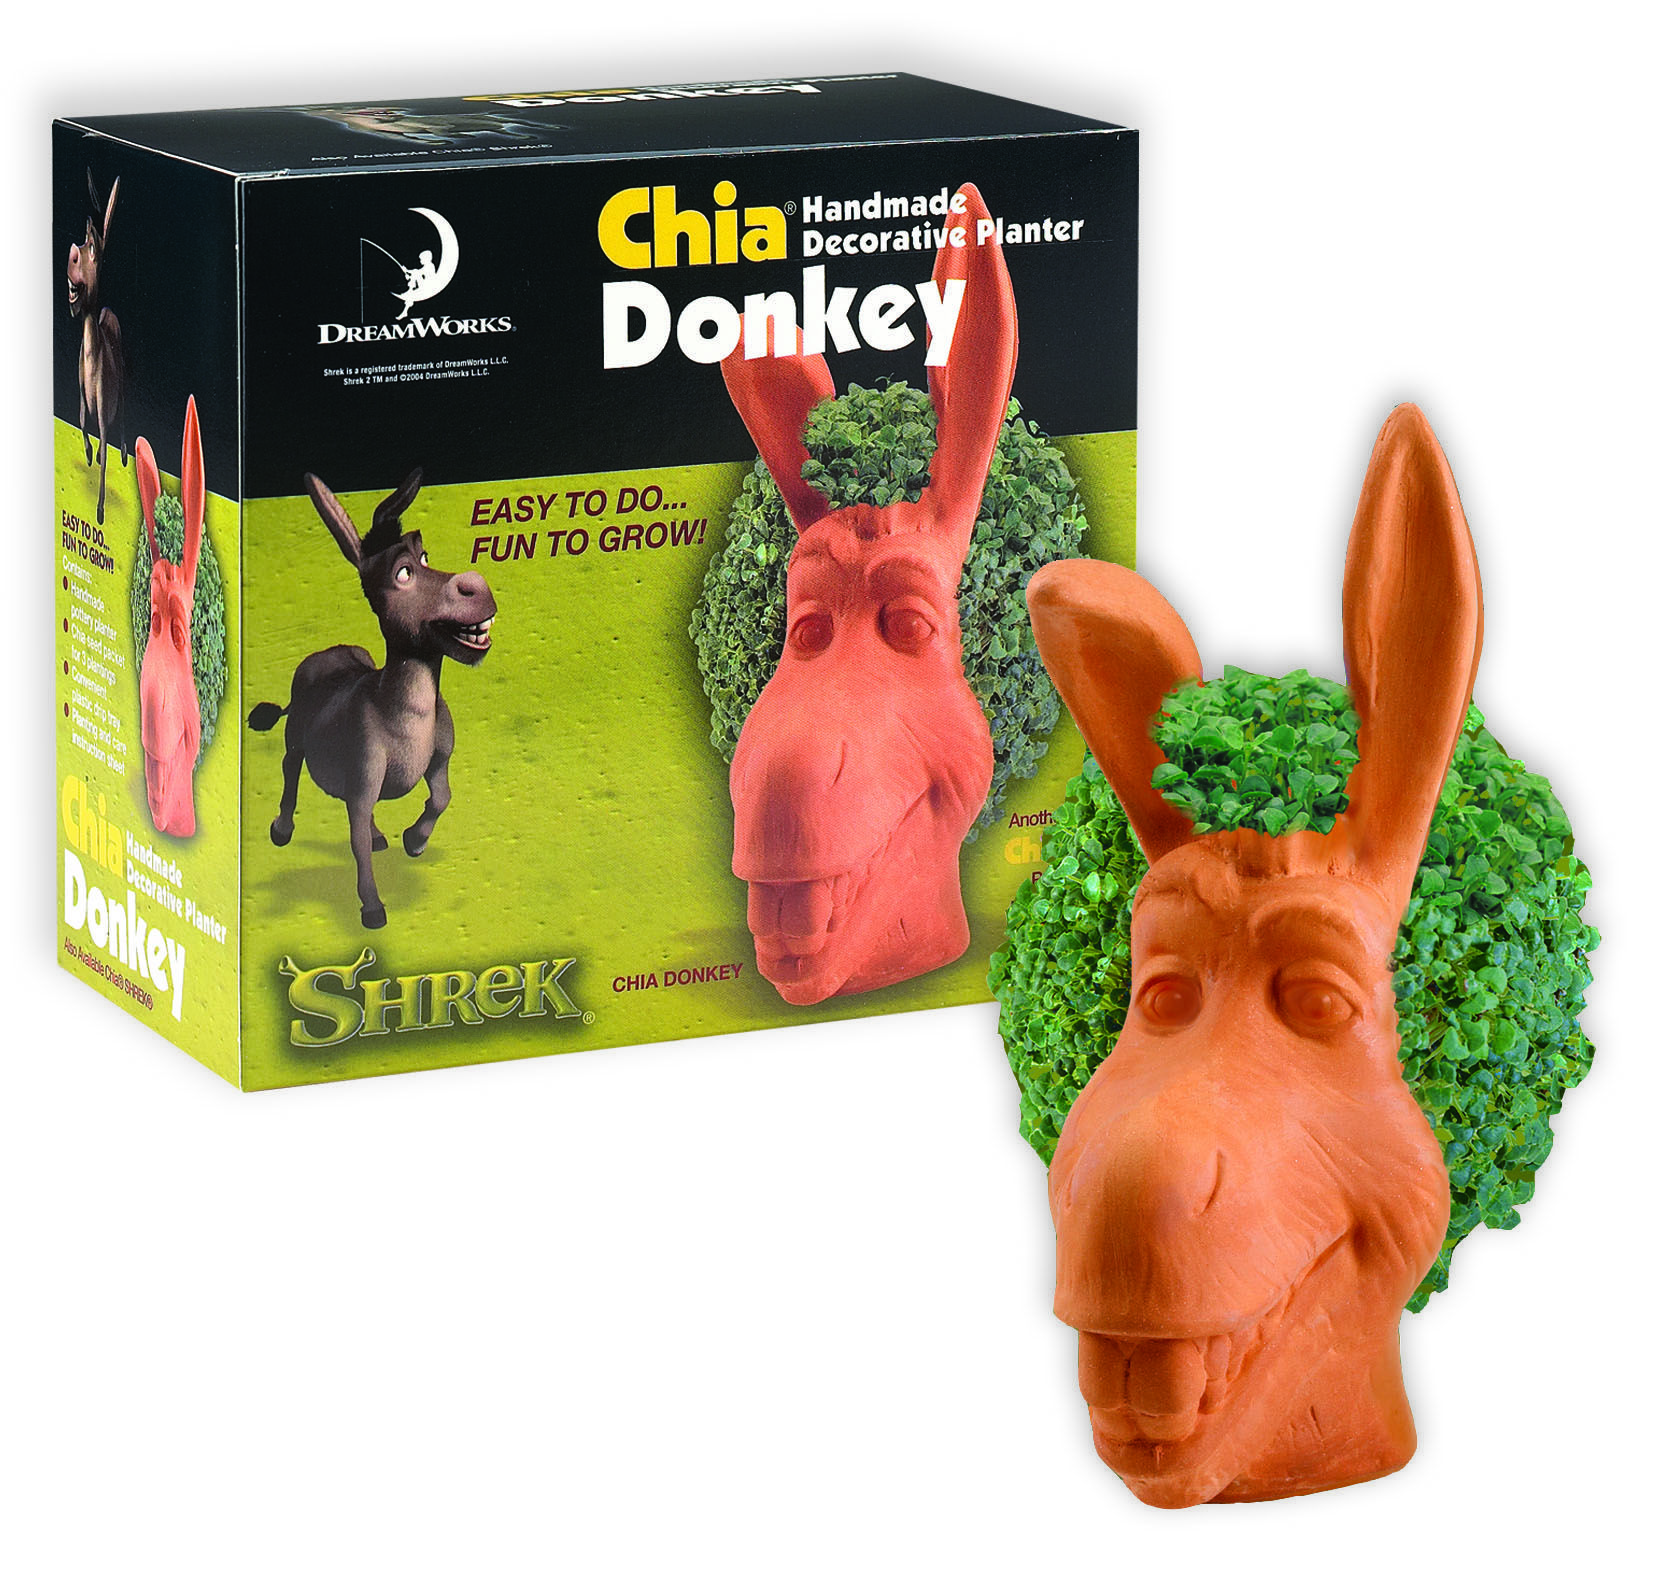 Chia Donkey The First In My Collection Has Hair In His Teeth Right Now Chia Pet Handmade Planter Decorative Planters